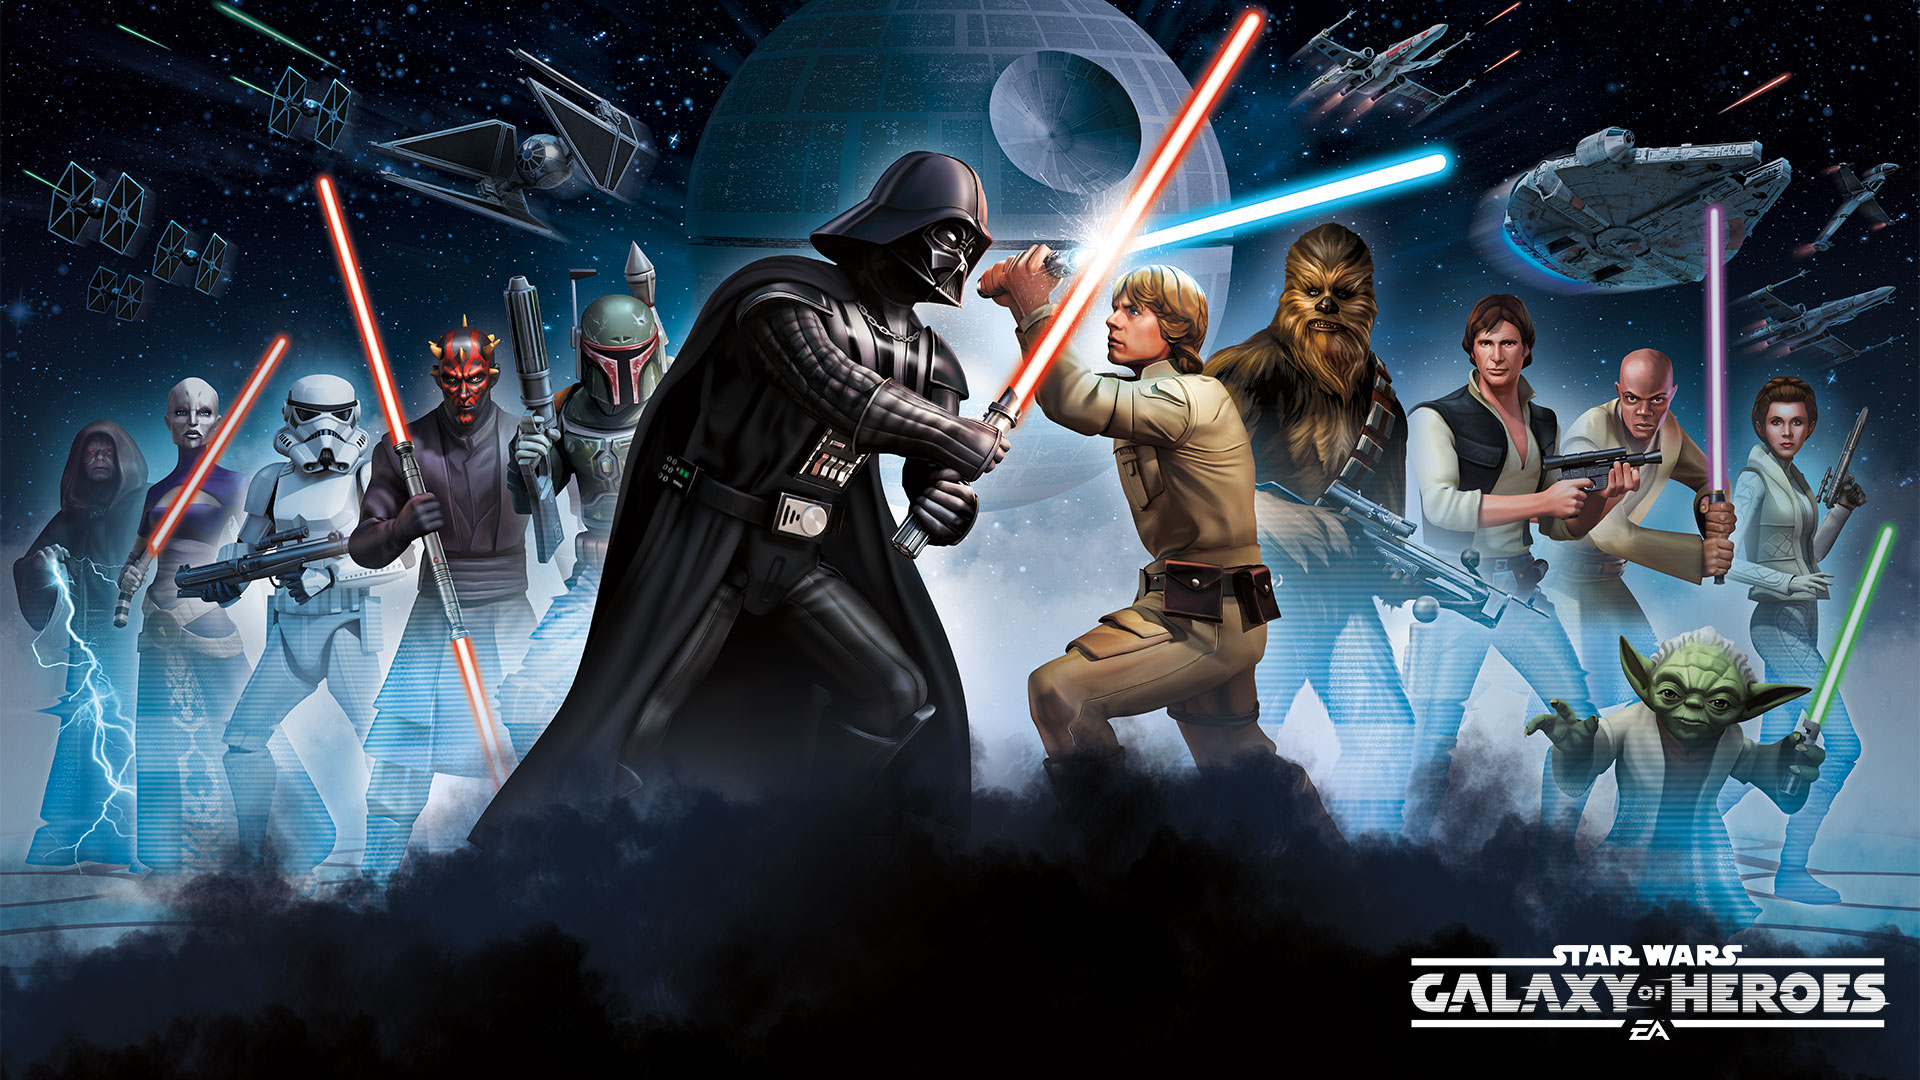 Star Wars Galaxy of Heroes HD Wallpapers 33 images